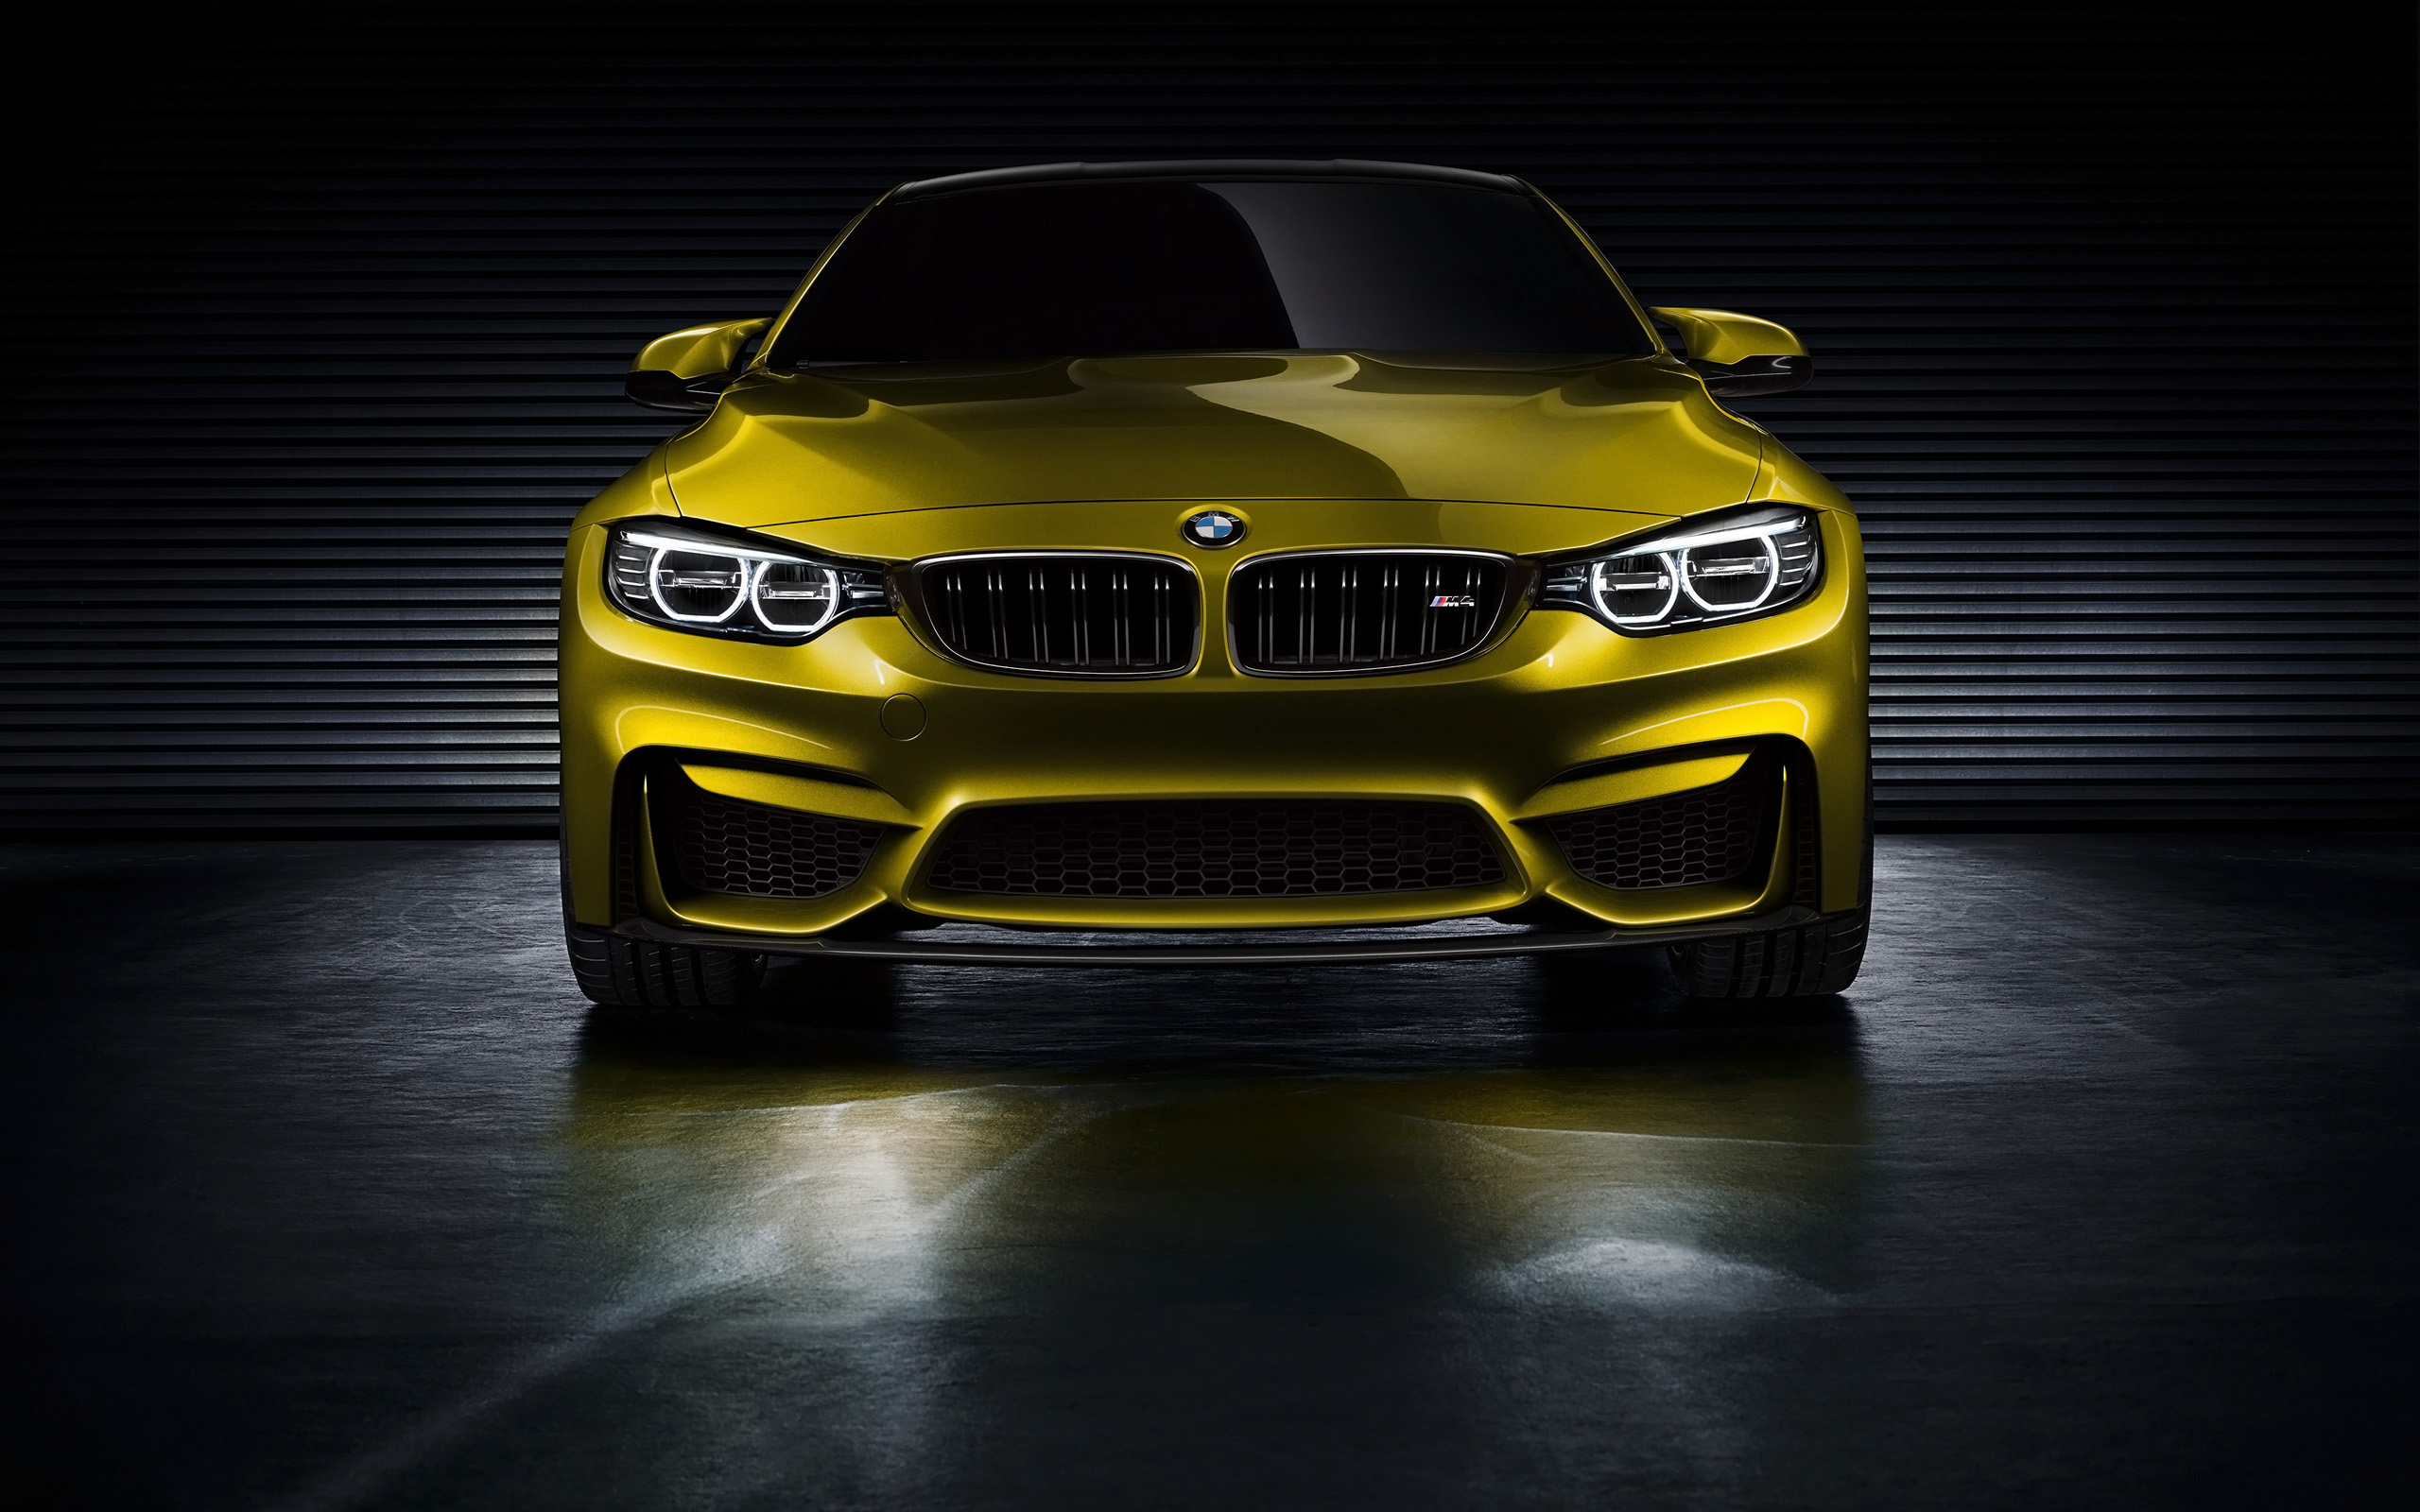 Bmw M Images Bmw M4 Coupe Concept 2013 Golden Front View Hd